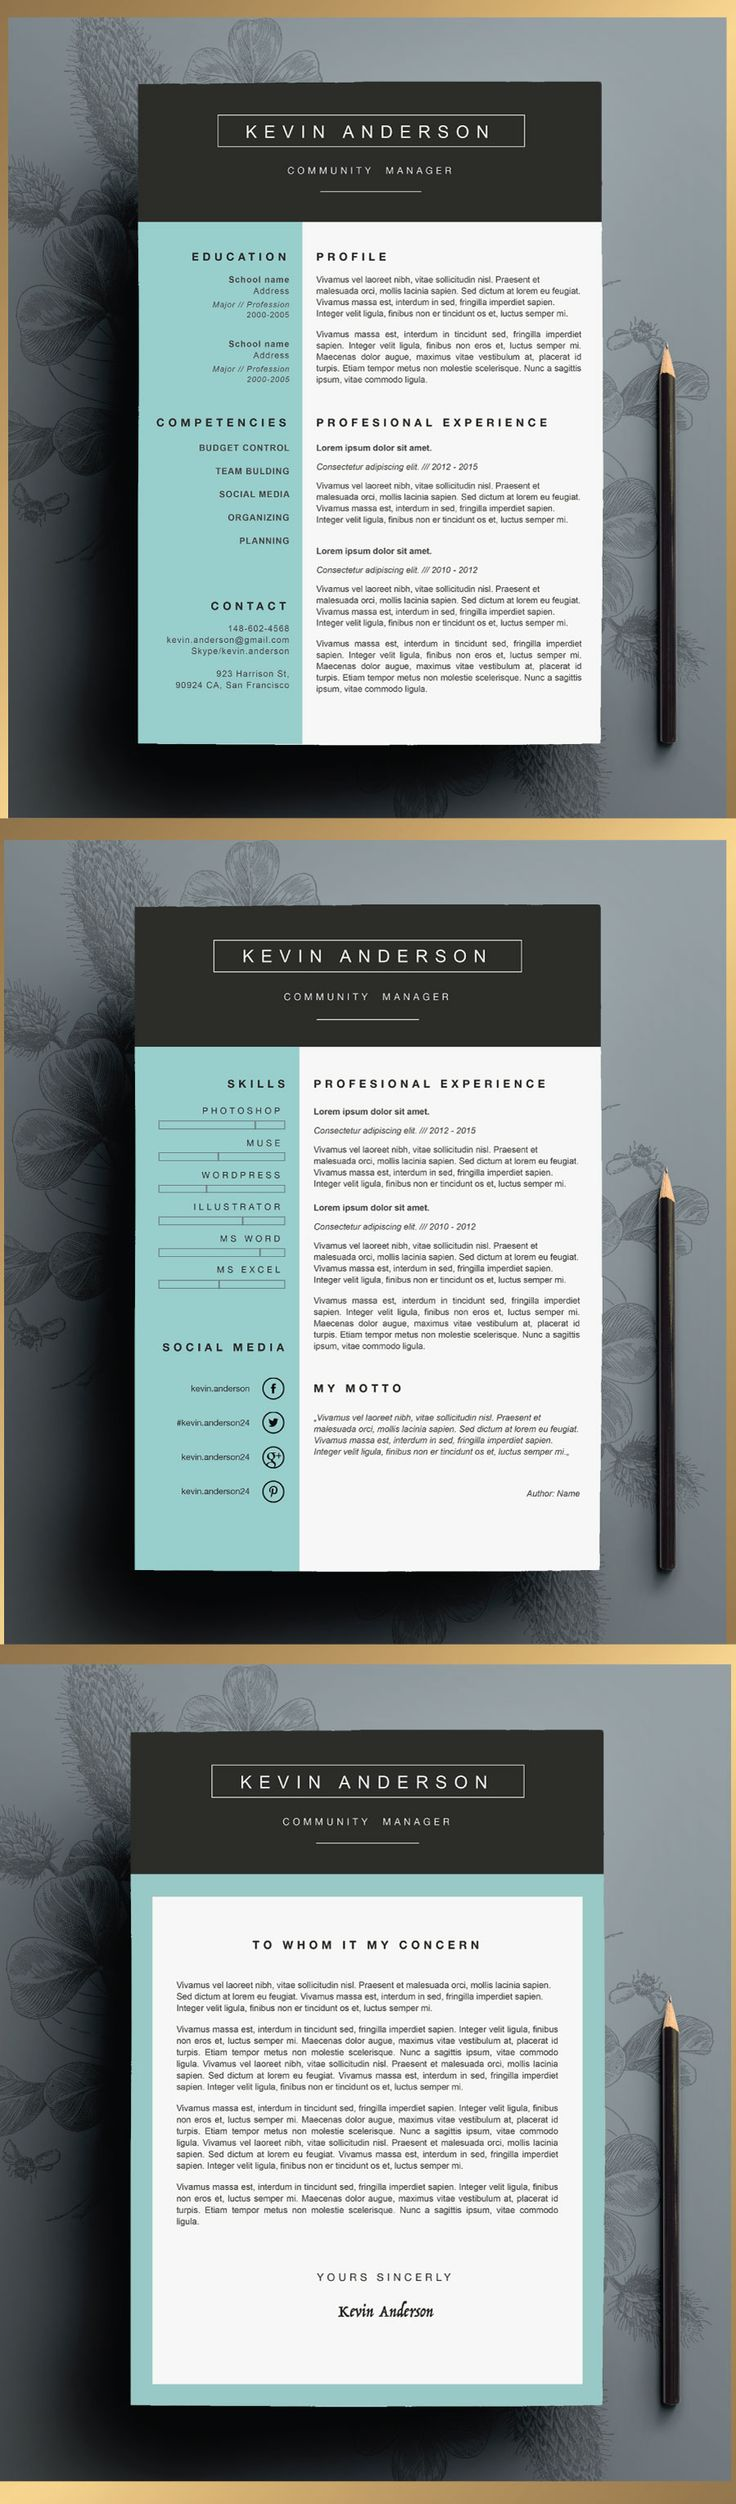 Stylish Resume Template editable in Ms Word by CVdesign. You can find us on Etsy! ♥